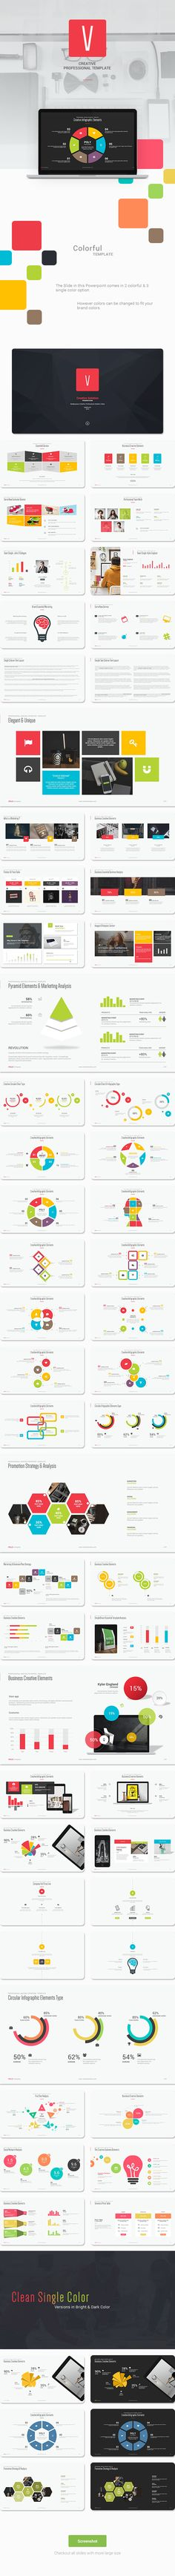 Get a modern Powerpoint Presentation that is beautifully designed and functional. This slides comes with infographic elements, charts graphs and icons.